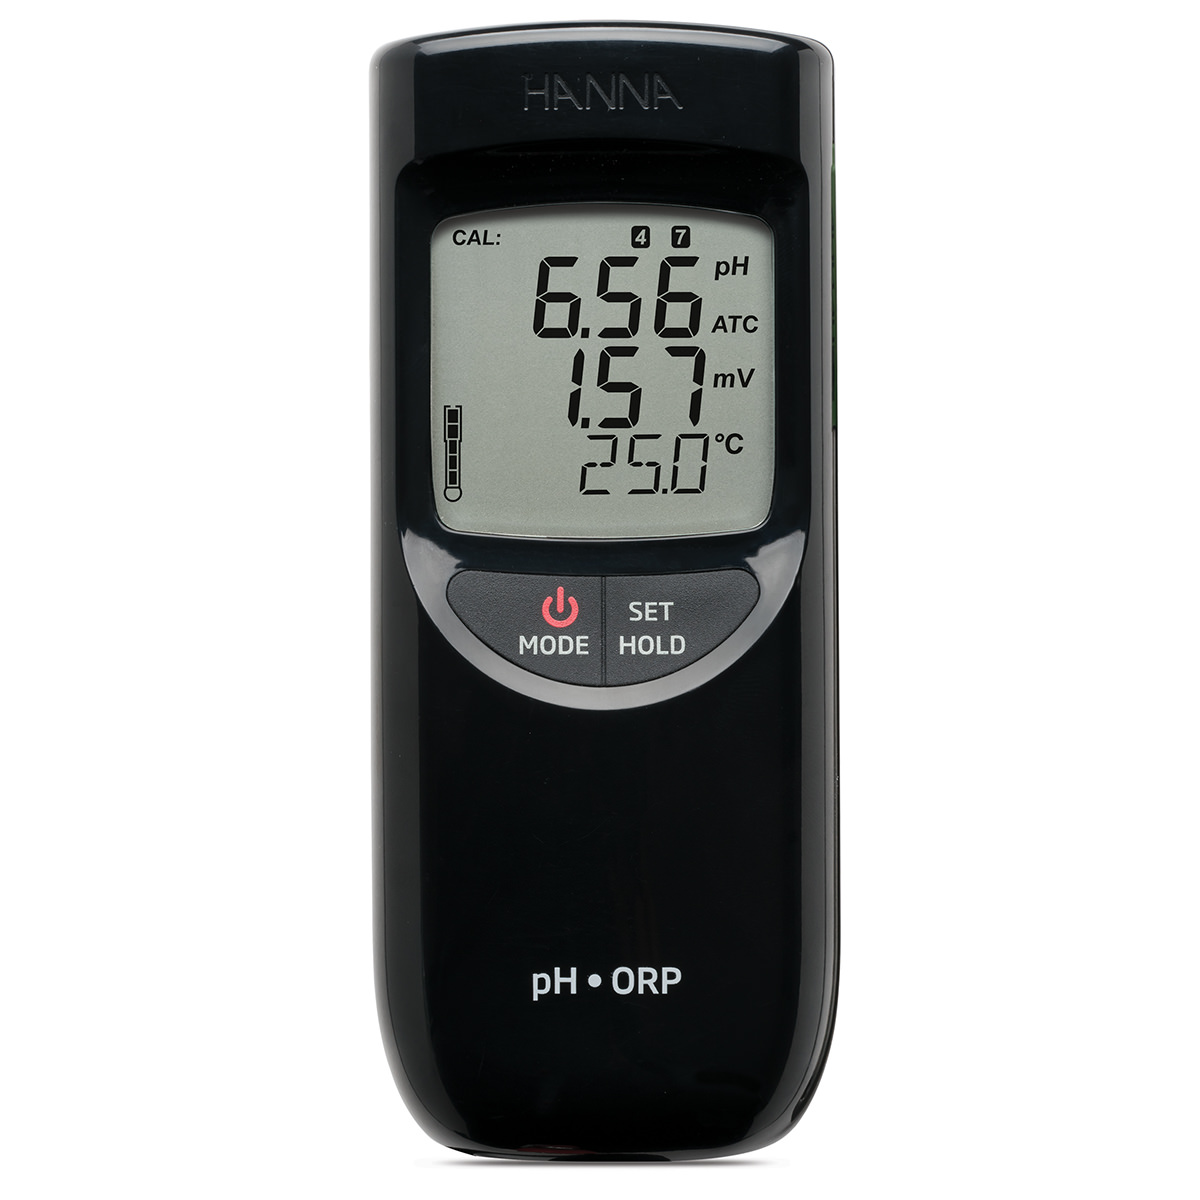 Waterproof Portable pH/pH-mV/ORP/Temperature Meter with Sensor Check™ - HI991003